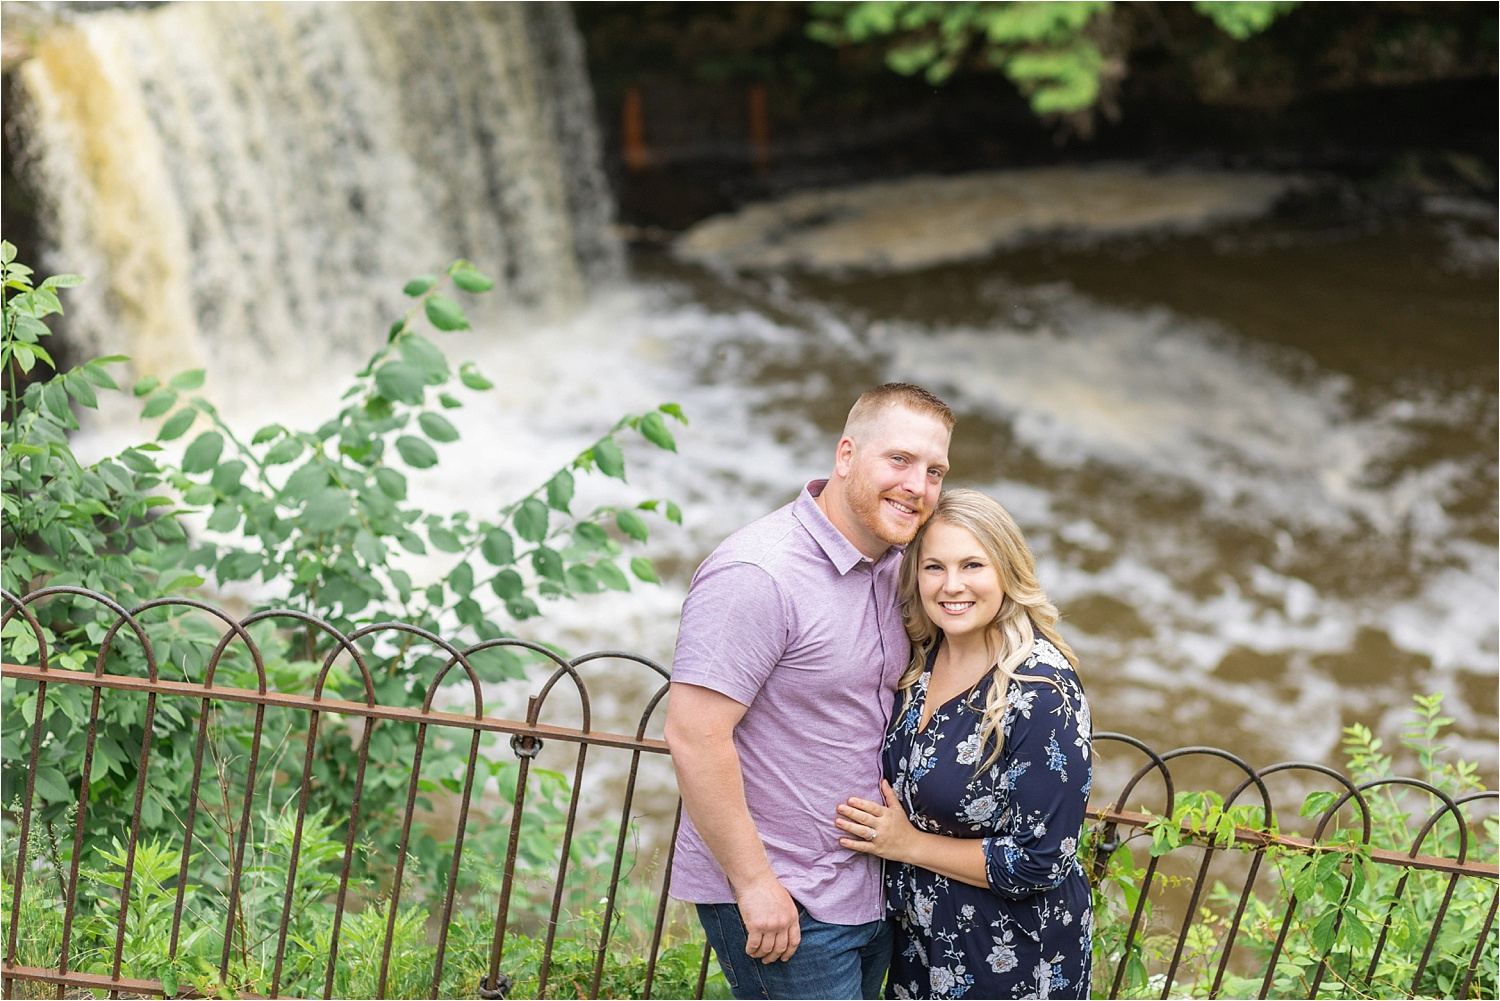 engagement photos at lanterman's mill waterfall at mill creek park in youngstown ohio